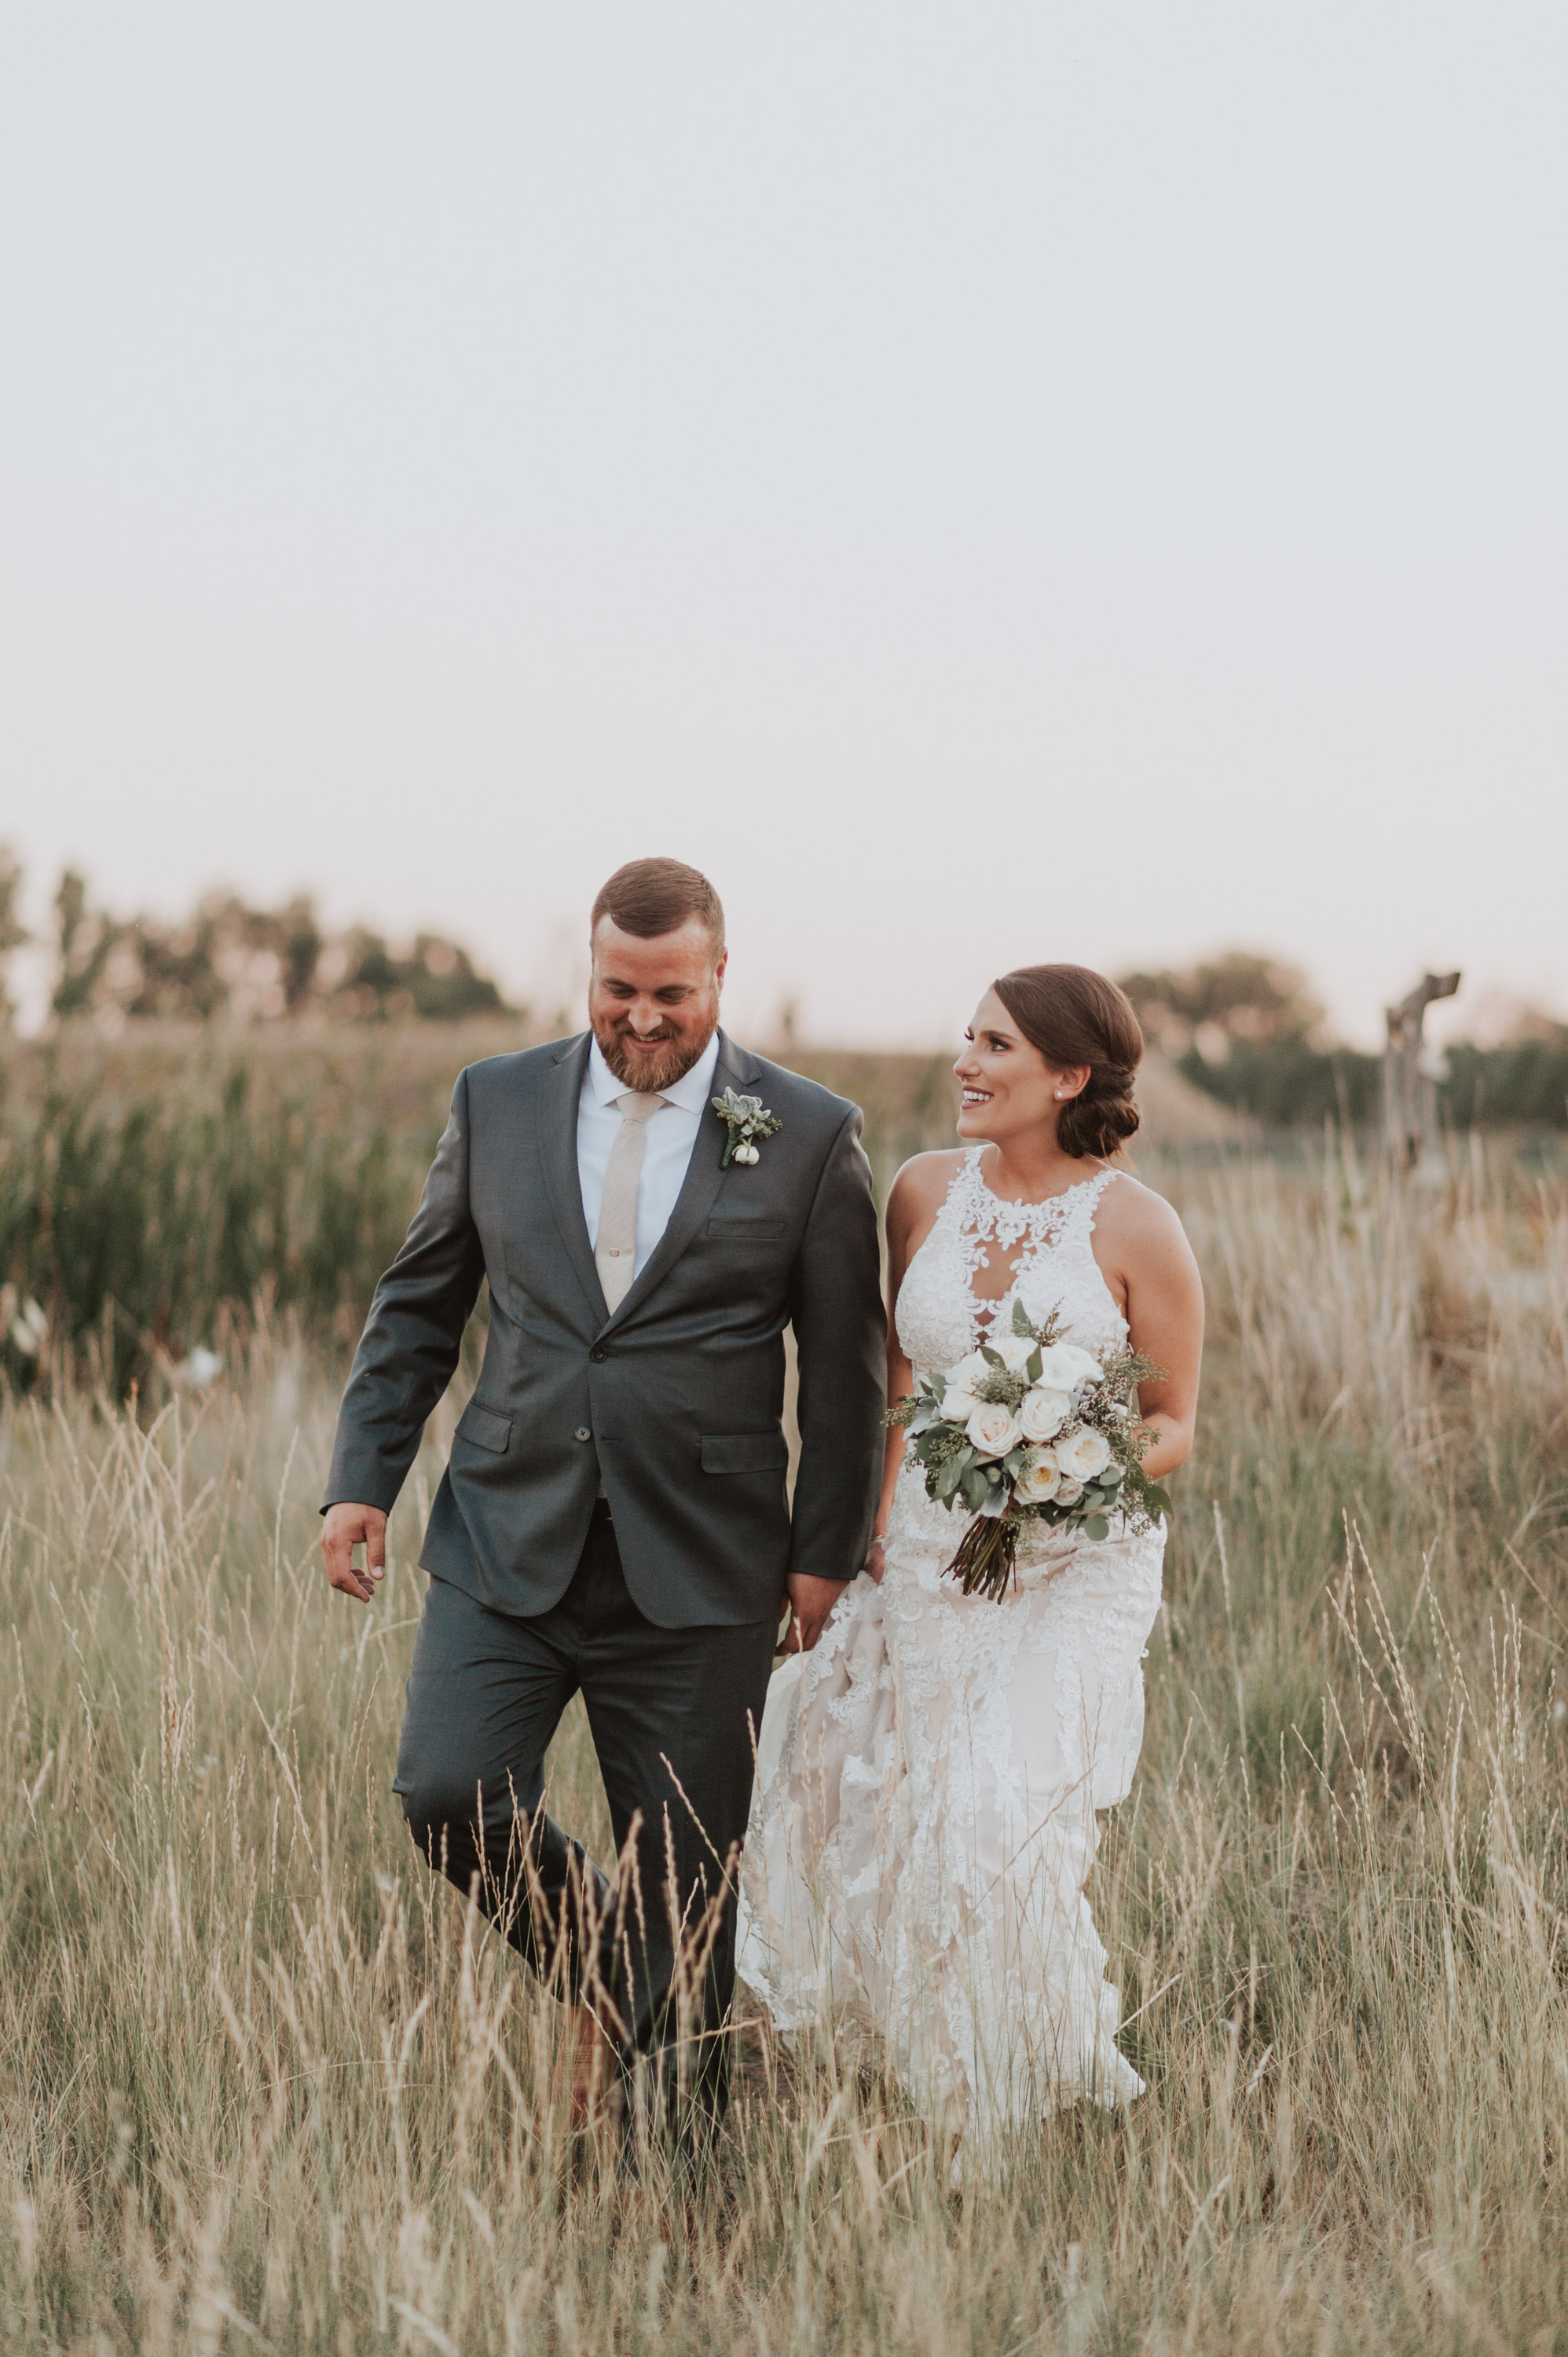 callie ethan windsor colorado wedding natural colorado wedding photographer fort collins